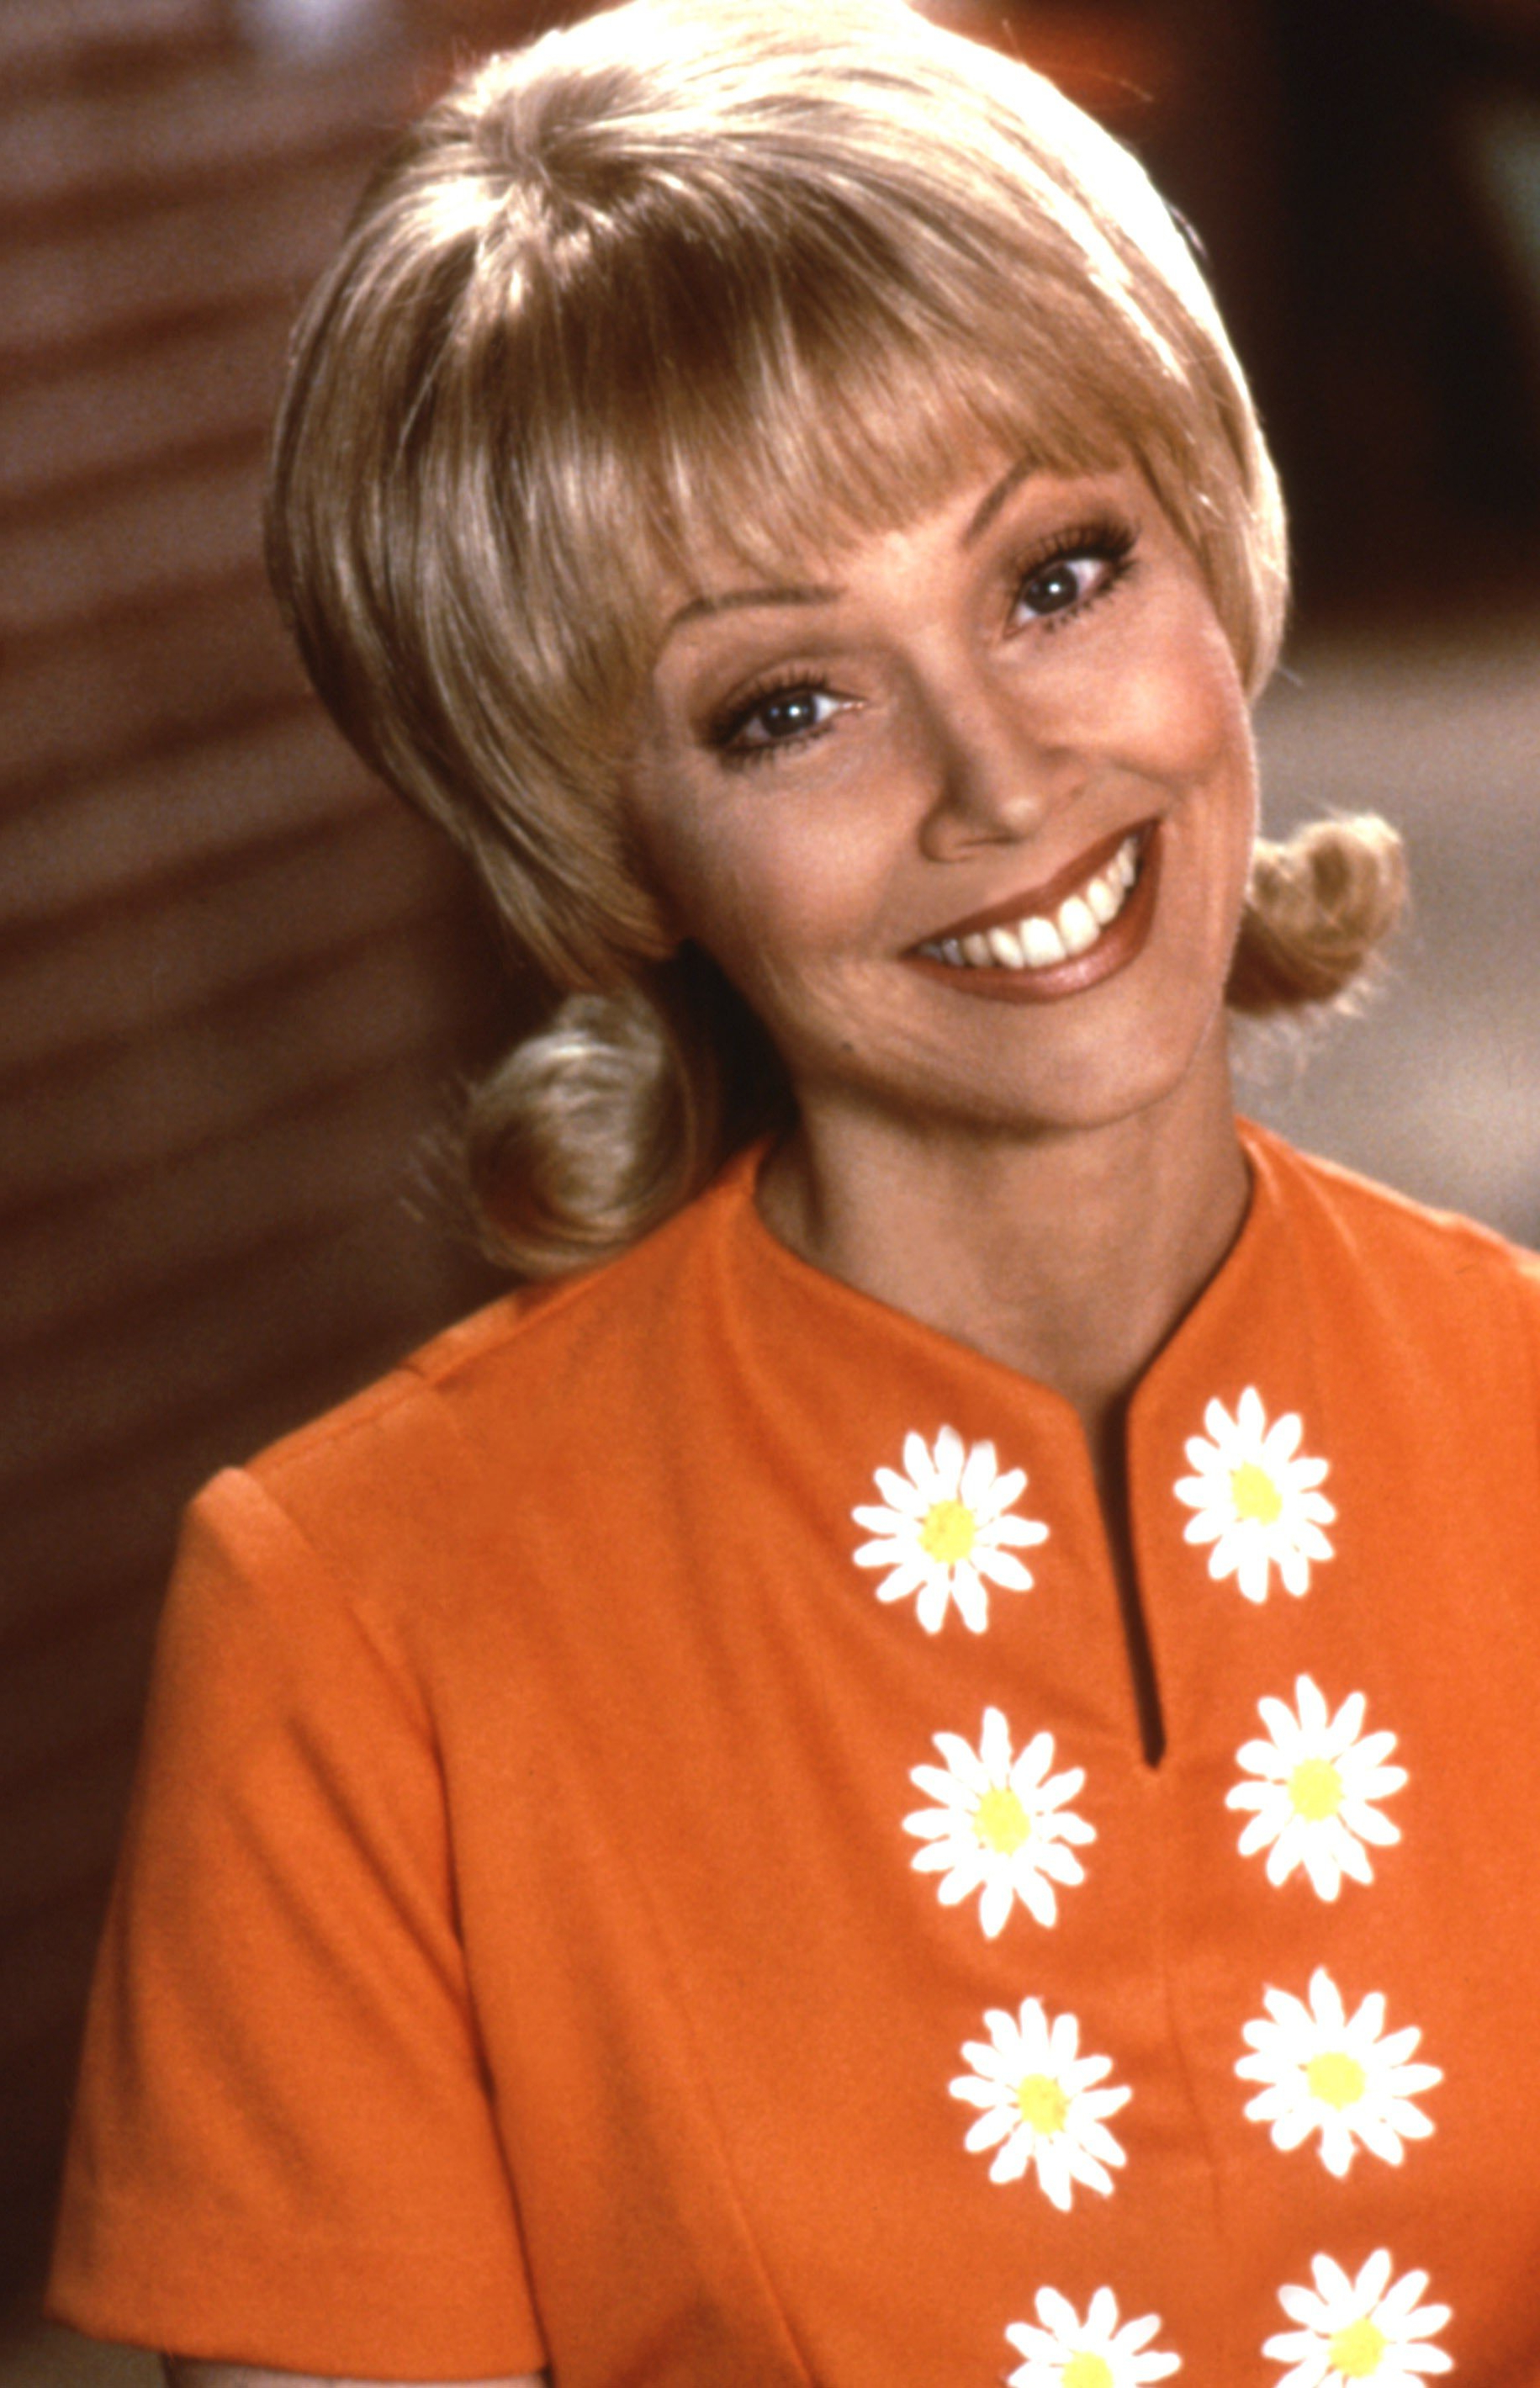 Haircuts Not To Get | Popsugar Beauty Australia In Carol Brady Inspired Hairstyles (View 10 of 20)